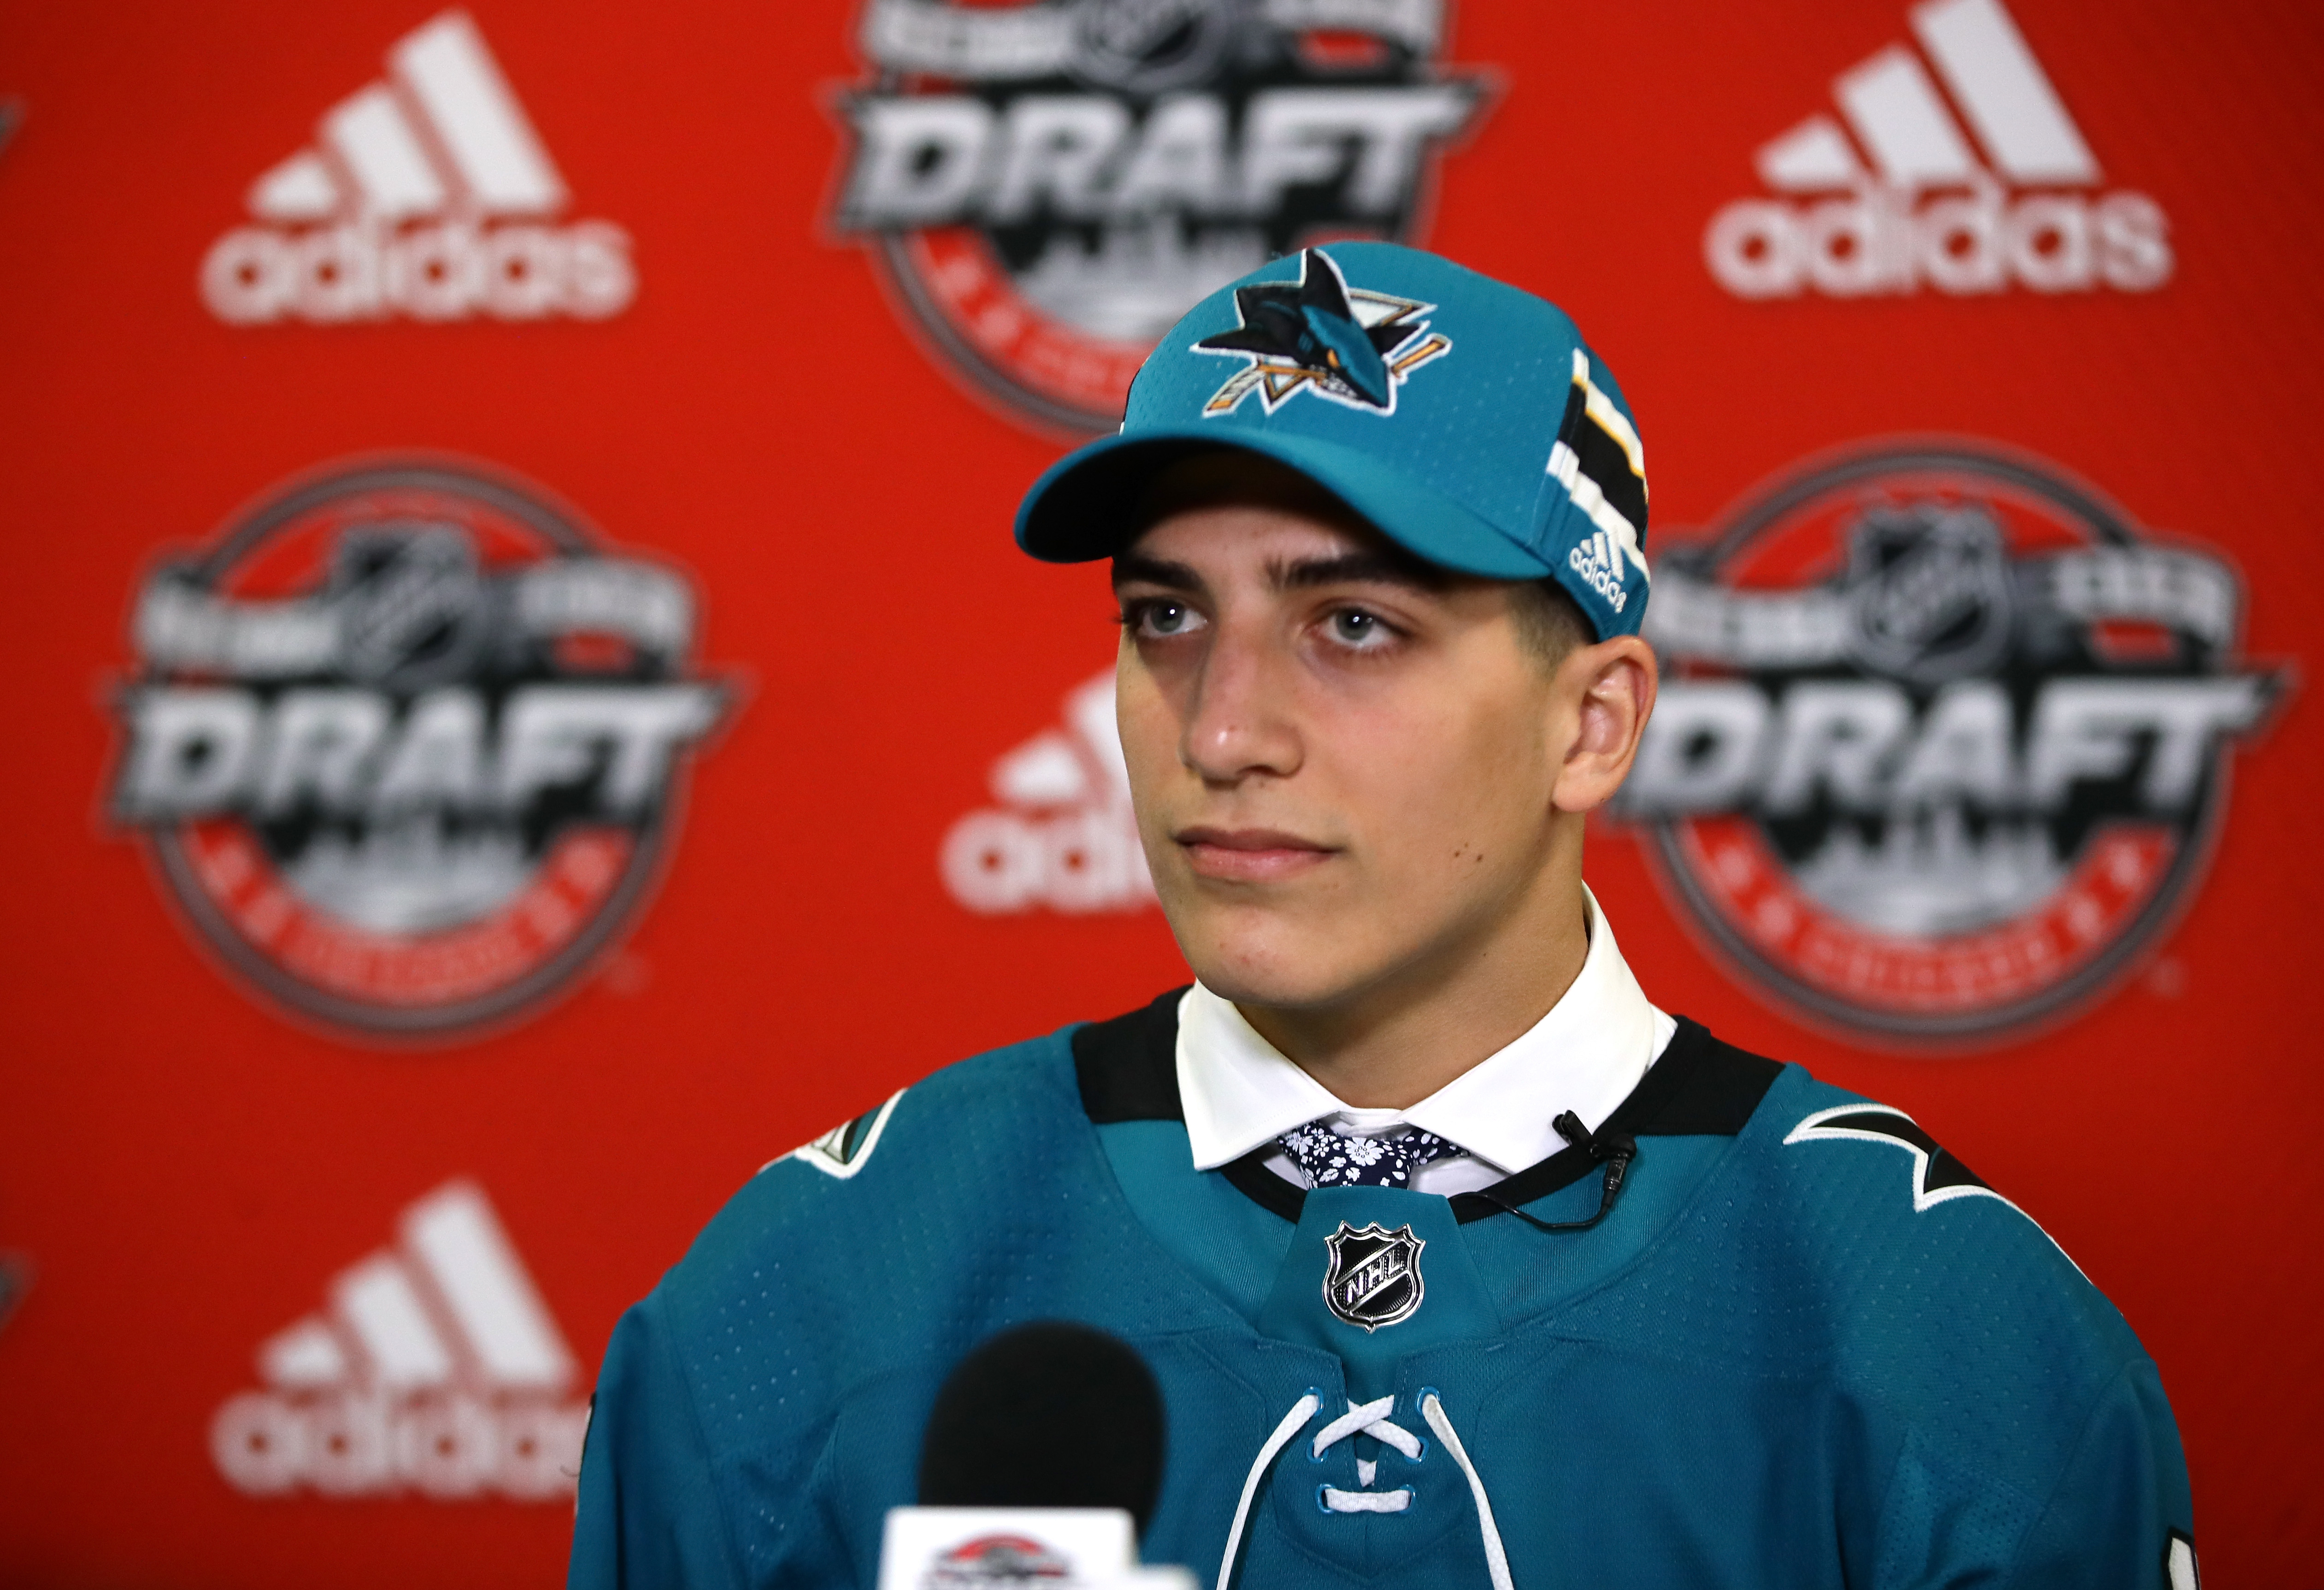 CHICAGO, IL - JUNE 24: Mario Ferraro is interviewed after being selected 49th overall by the San Jose Sharks during the 2017 NHL Draft at the United Center on June 24, 2017 in Chicago, Illinois.